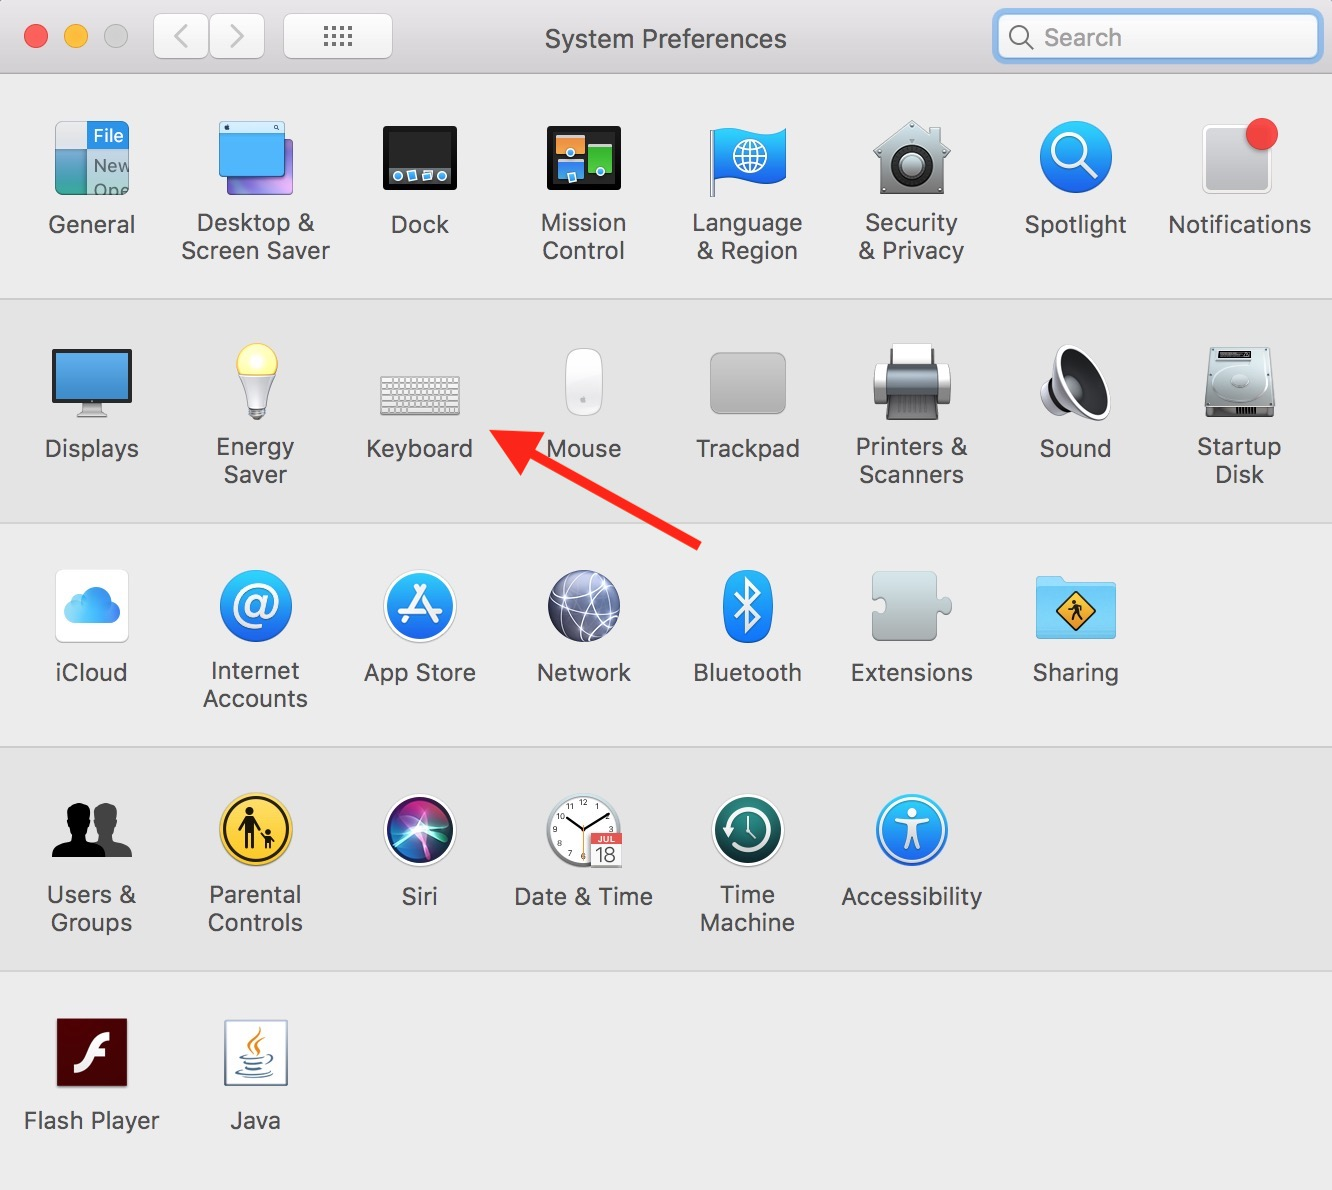 Mac System Preferences Window with Keyboard preferences